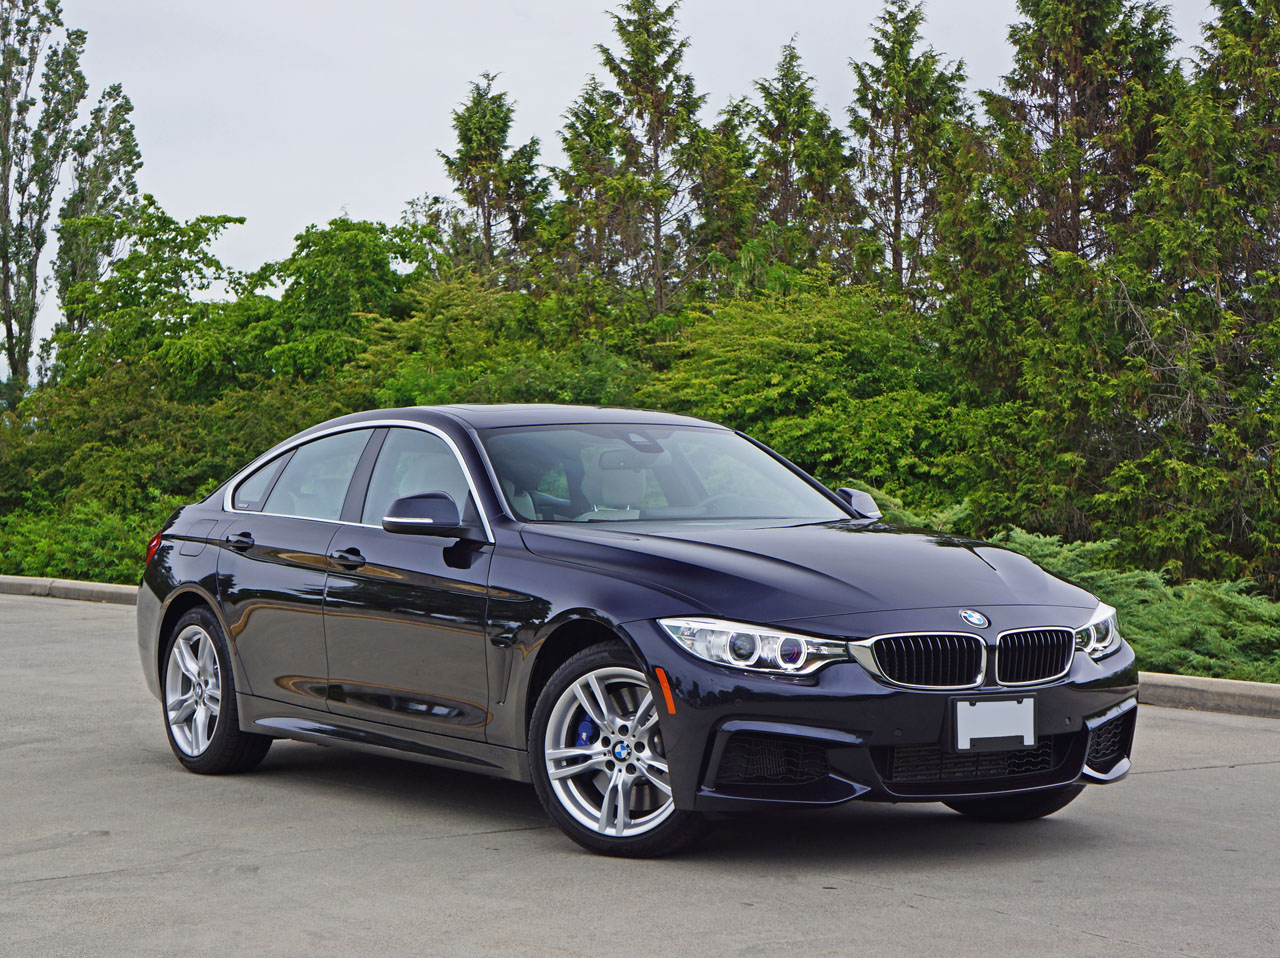 2015 Bmw 435i Xdrive Gran Coupe Road Test Review The Car Magazine